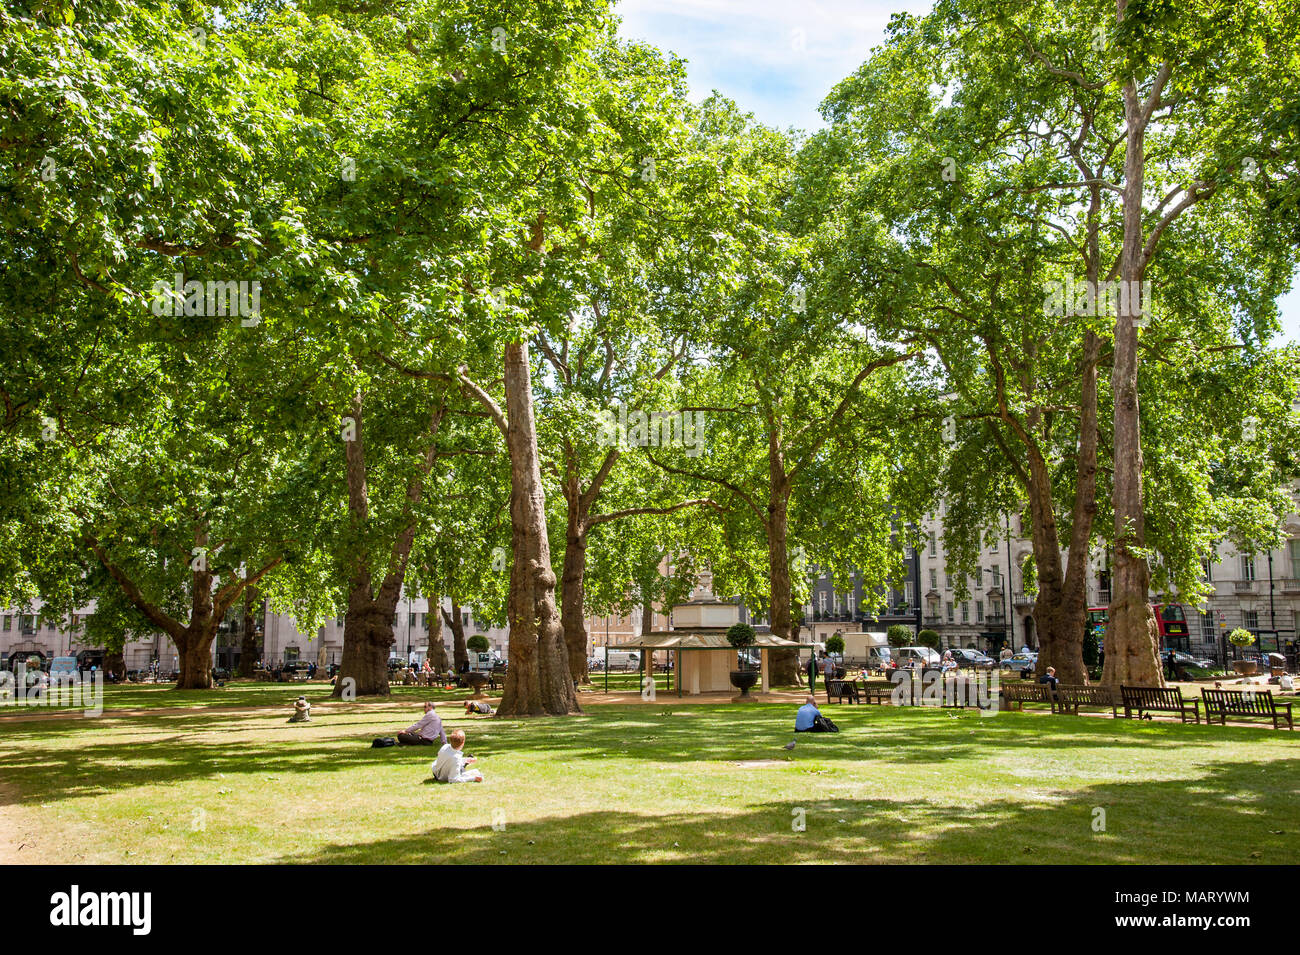 Berkeley Square Gardens, London, UK - Stock Image